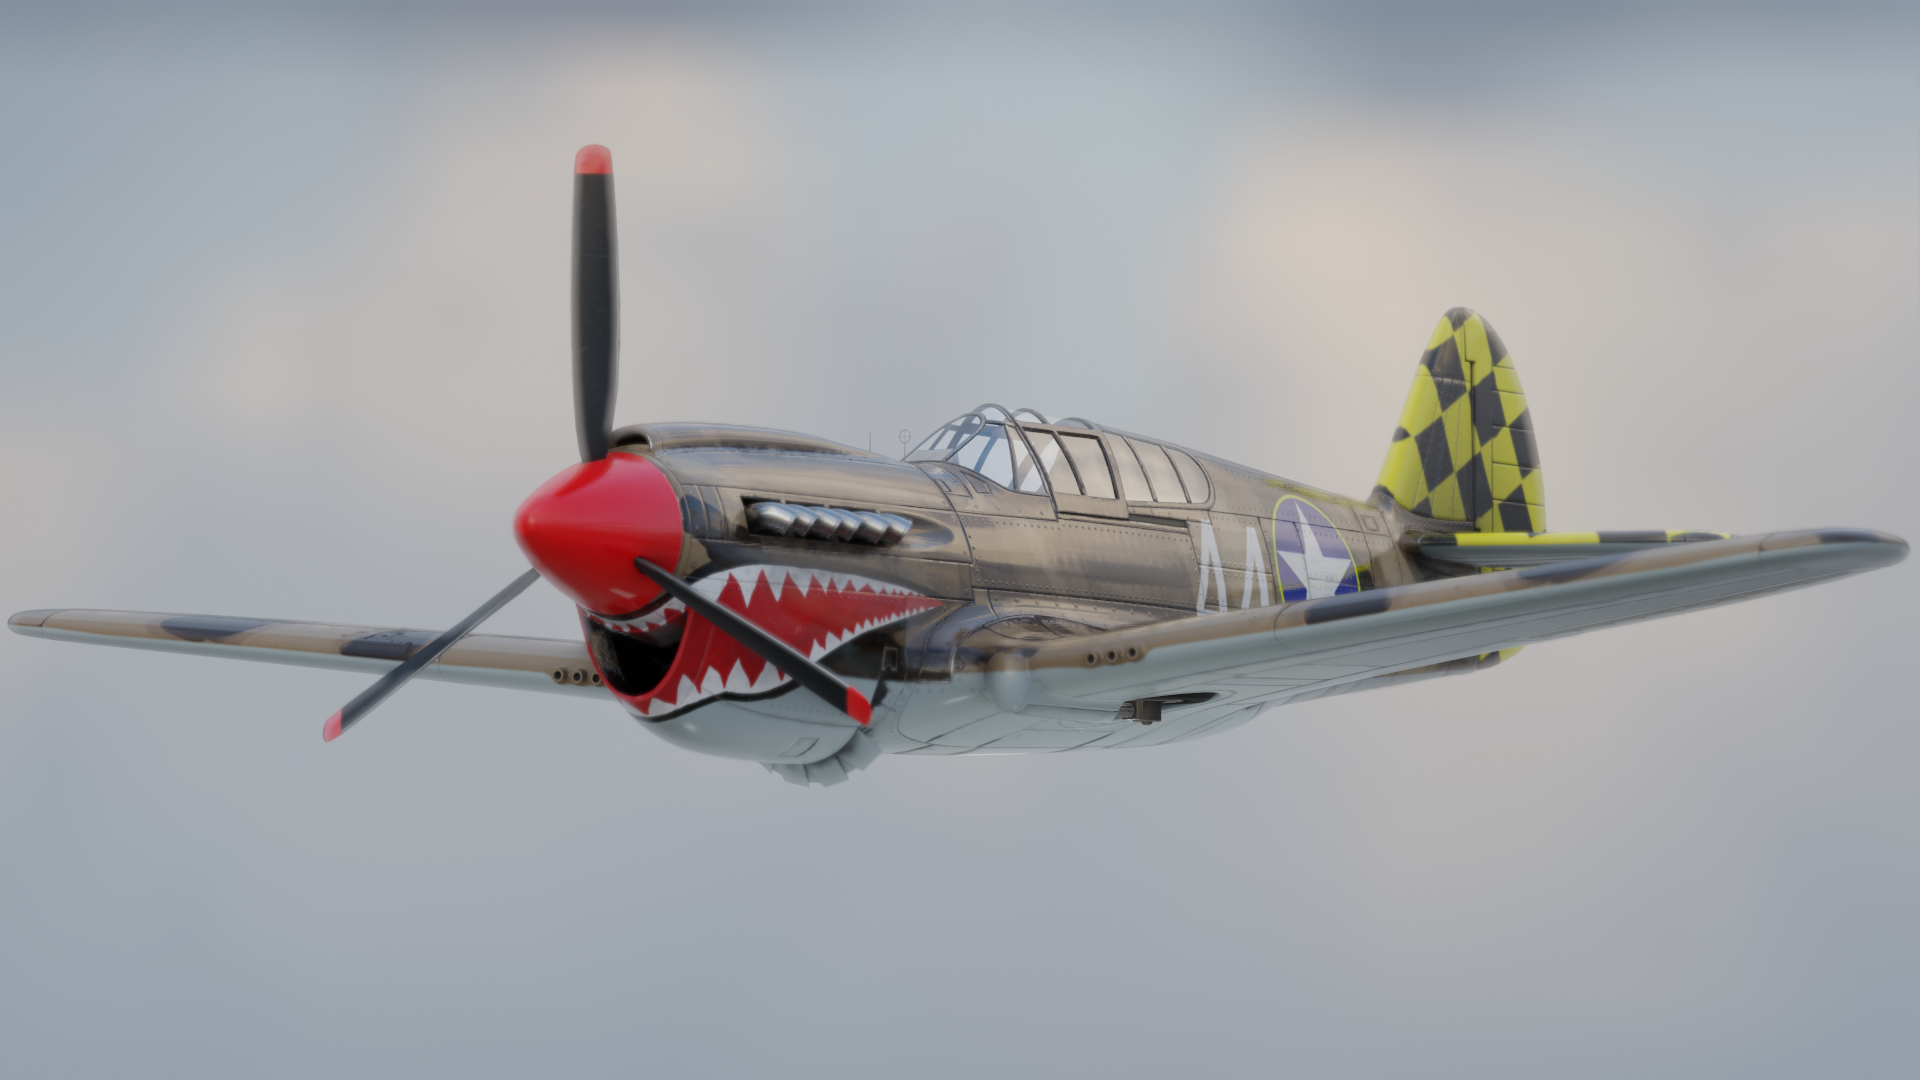 P40 Warhawk preview image 1